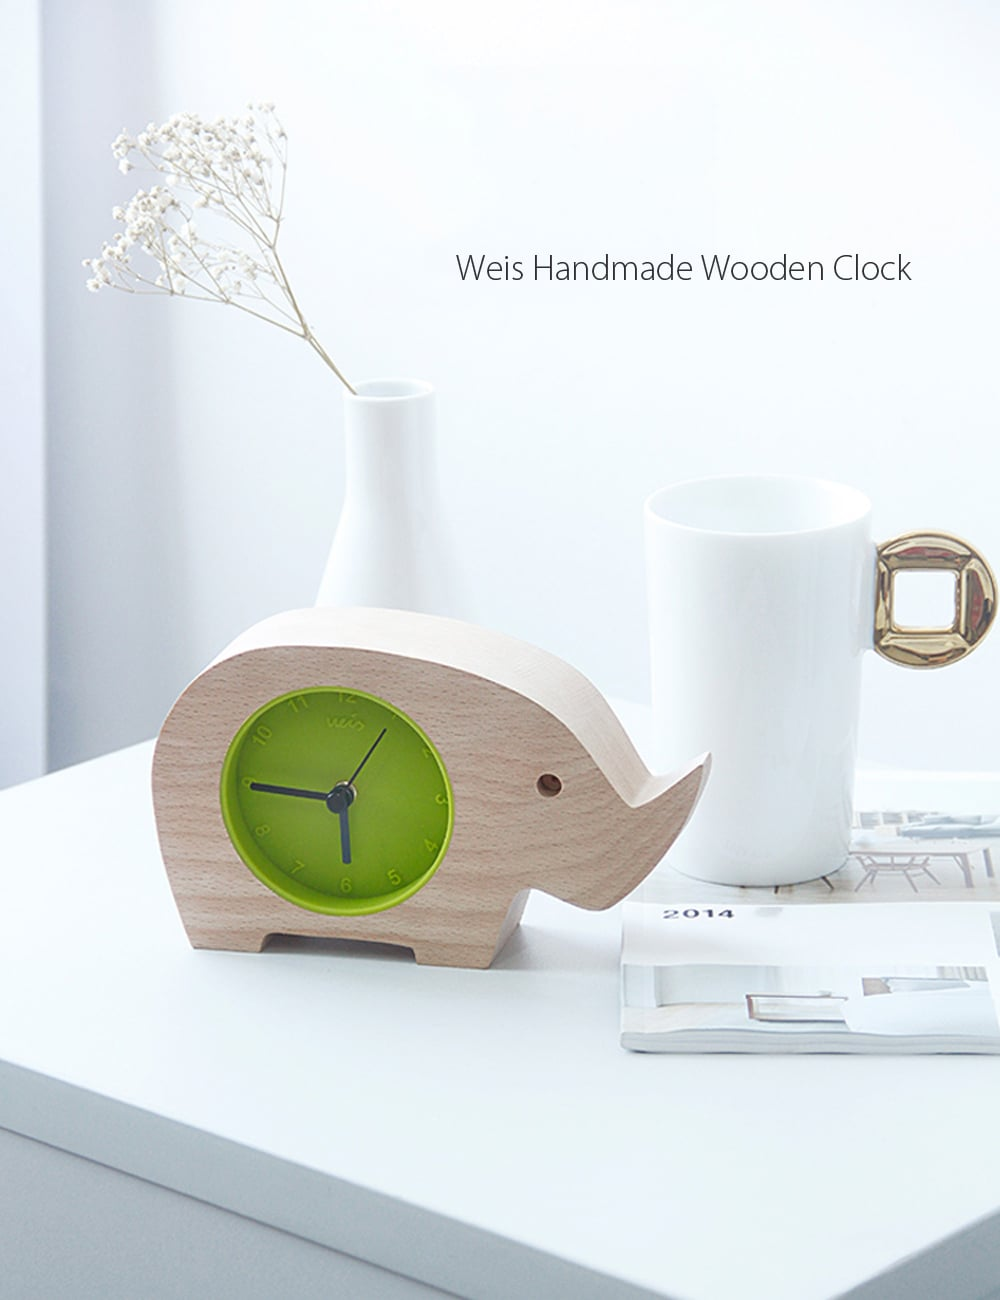 Weis Handmade Elephant Wooden Clock It is About Nature and Time.